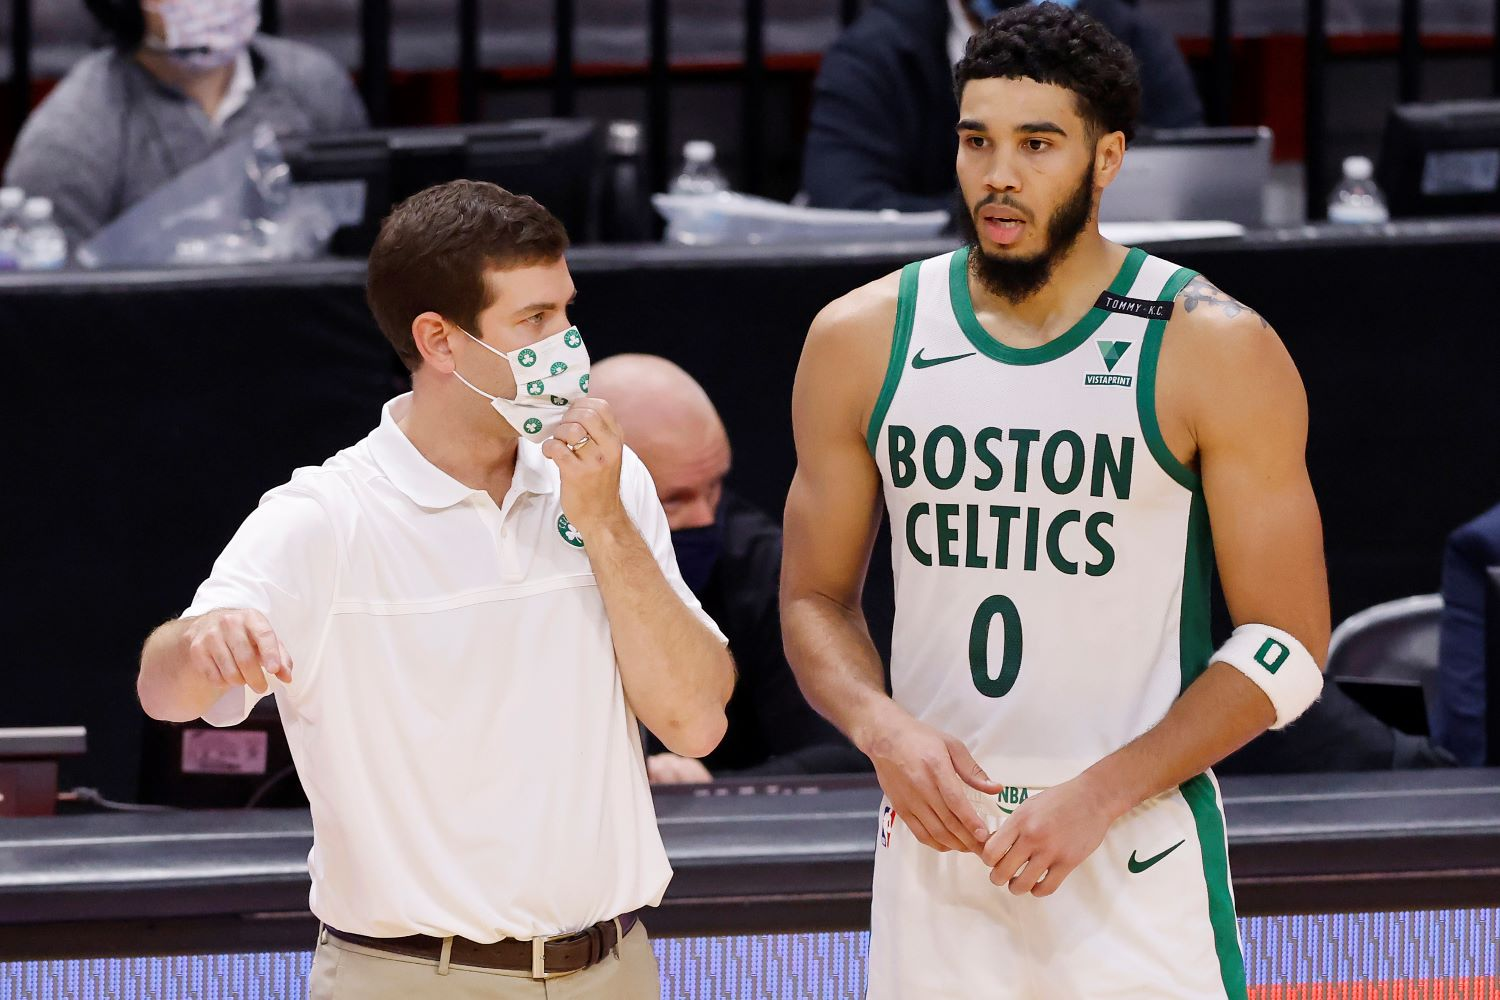 Jayson Tatum will not be playing for the Boston Celtics anytime soon due to the NBA's COVID-19 protocols.